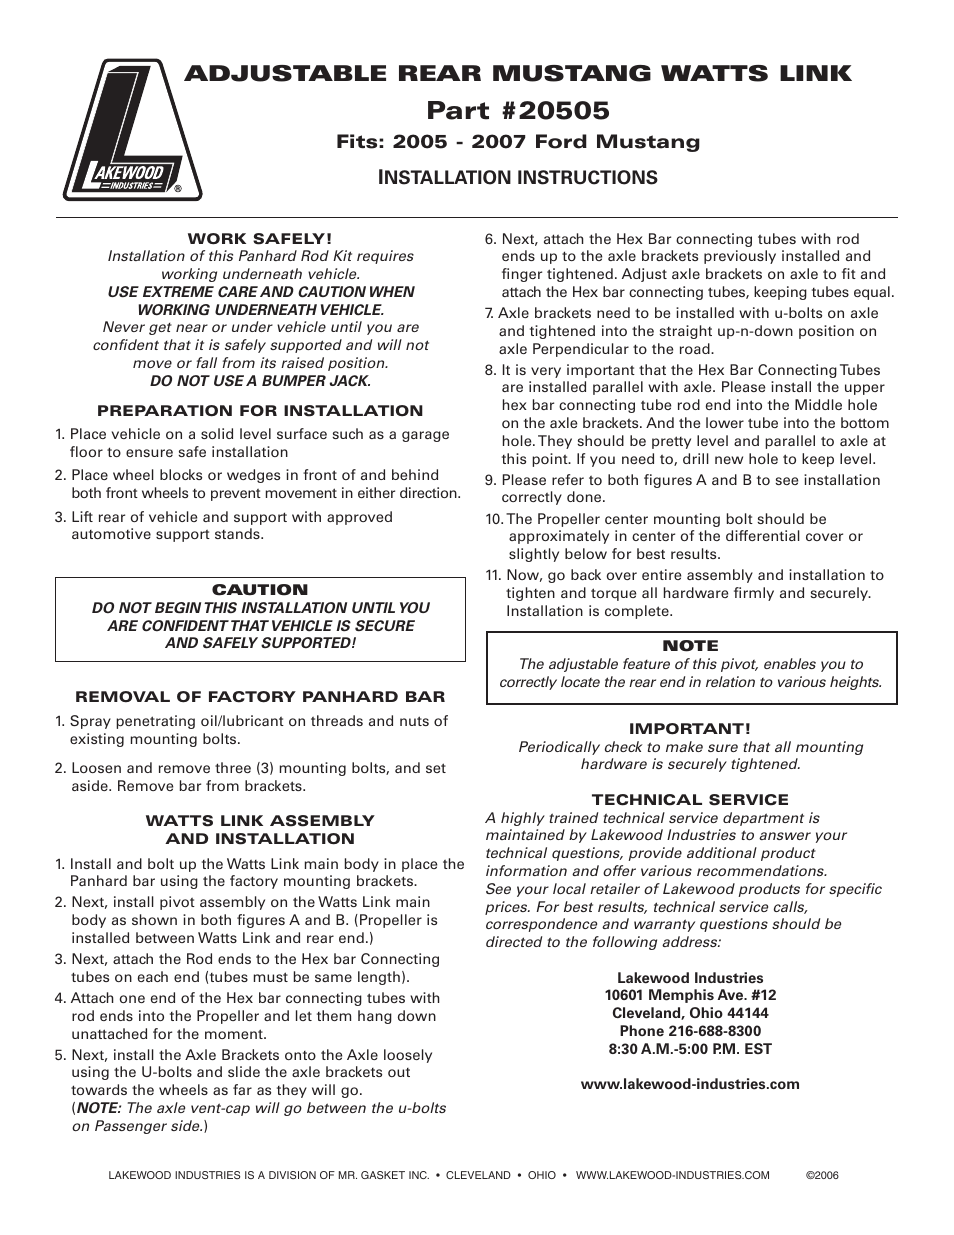 Mallory Ignition Lakewood watts link 20505 User Manual | 2 pages